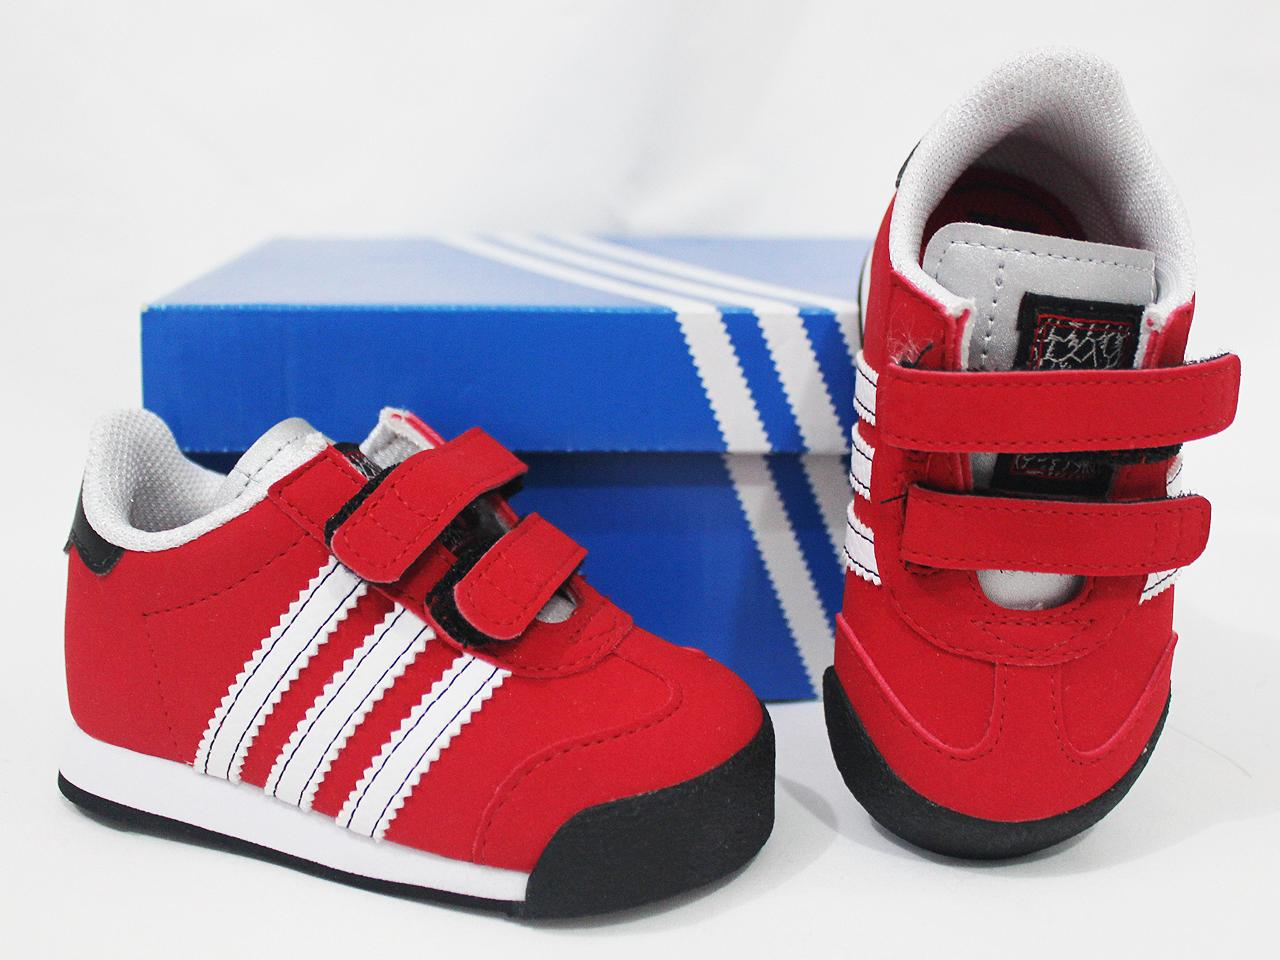 ADIDAS-ORIGINALS-SAMOA-BABY-TODDLER-KIDS-SHOES-US-4-5-6-7-8-9-10-RED-BLACK